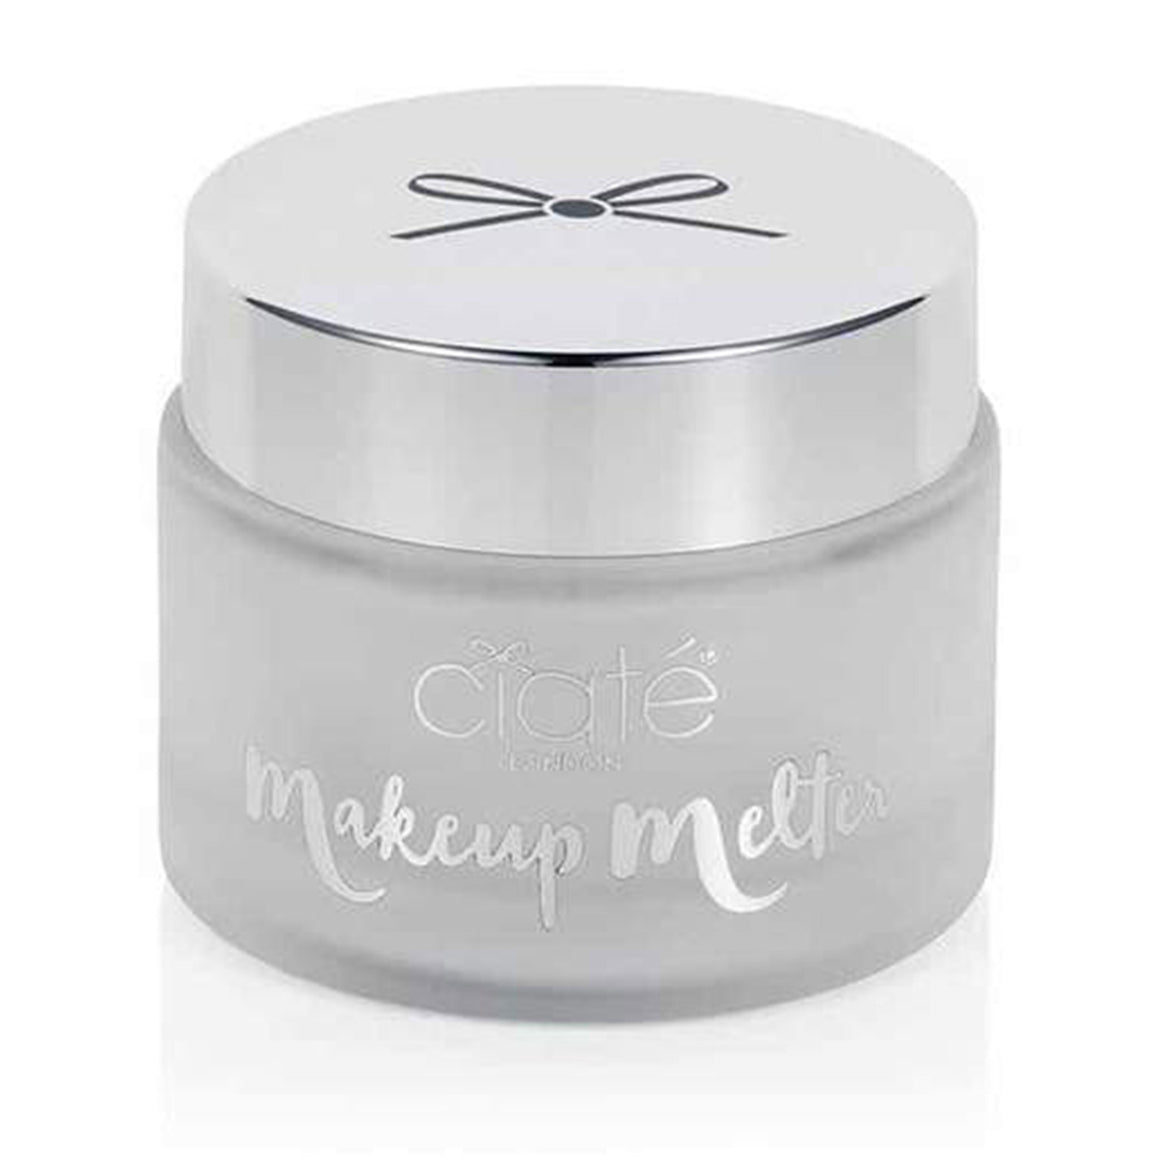 Ciate London - Makeup Melter 40 ml